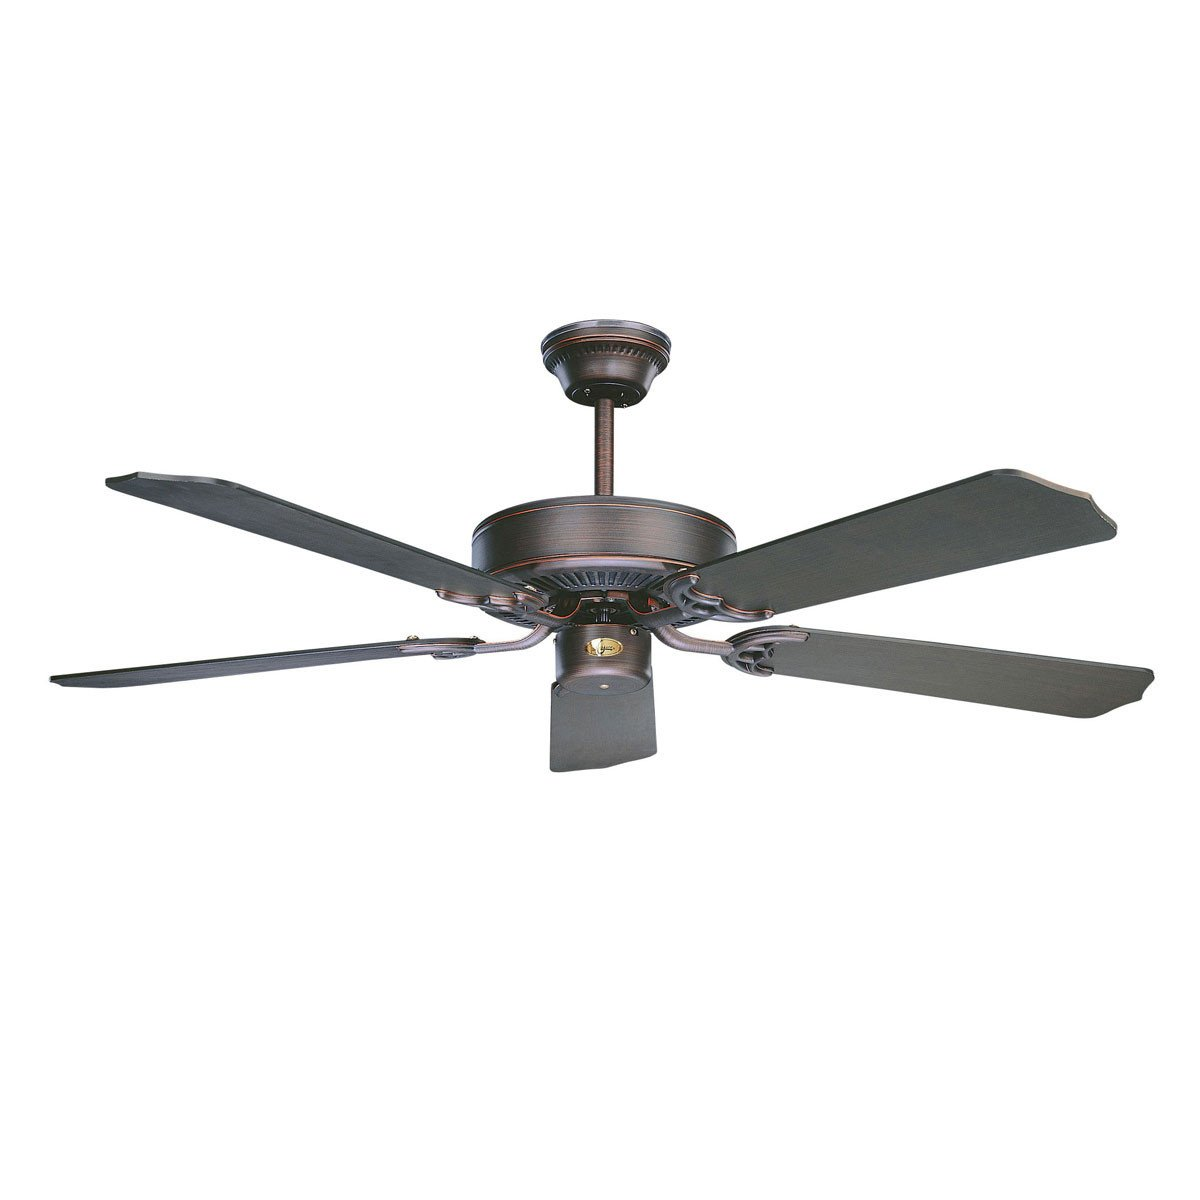 "Concord Fans 52"" California Home Energy Saver Oil Rubbed Bronze Ceiling Fan"